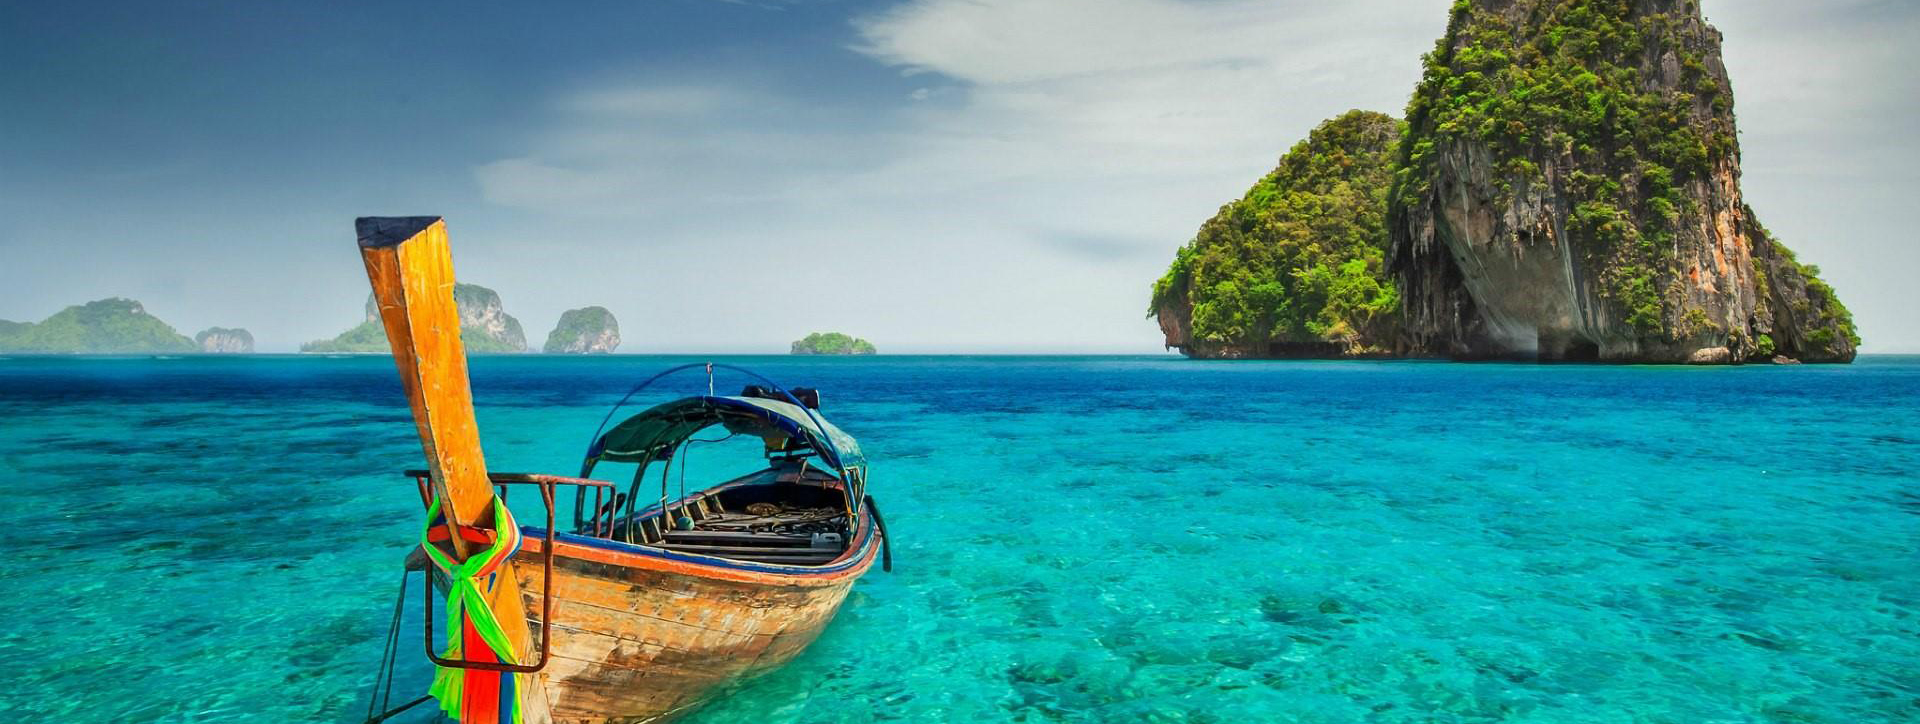 LTC Andaman Tour LTC Holidays LTC Packages